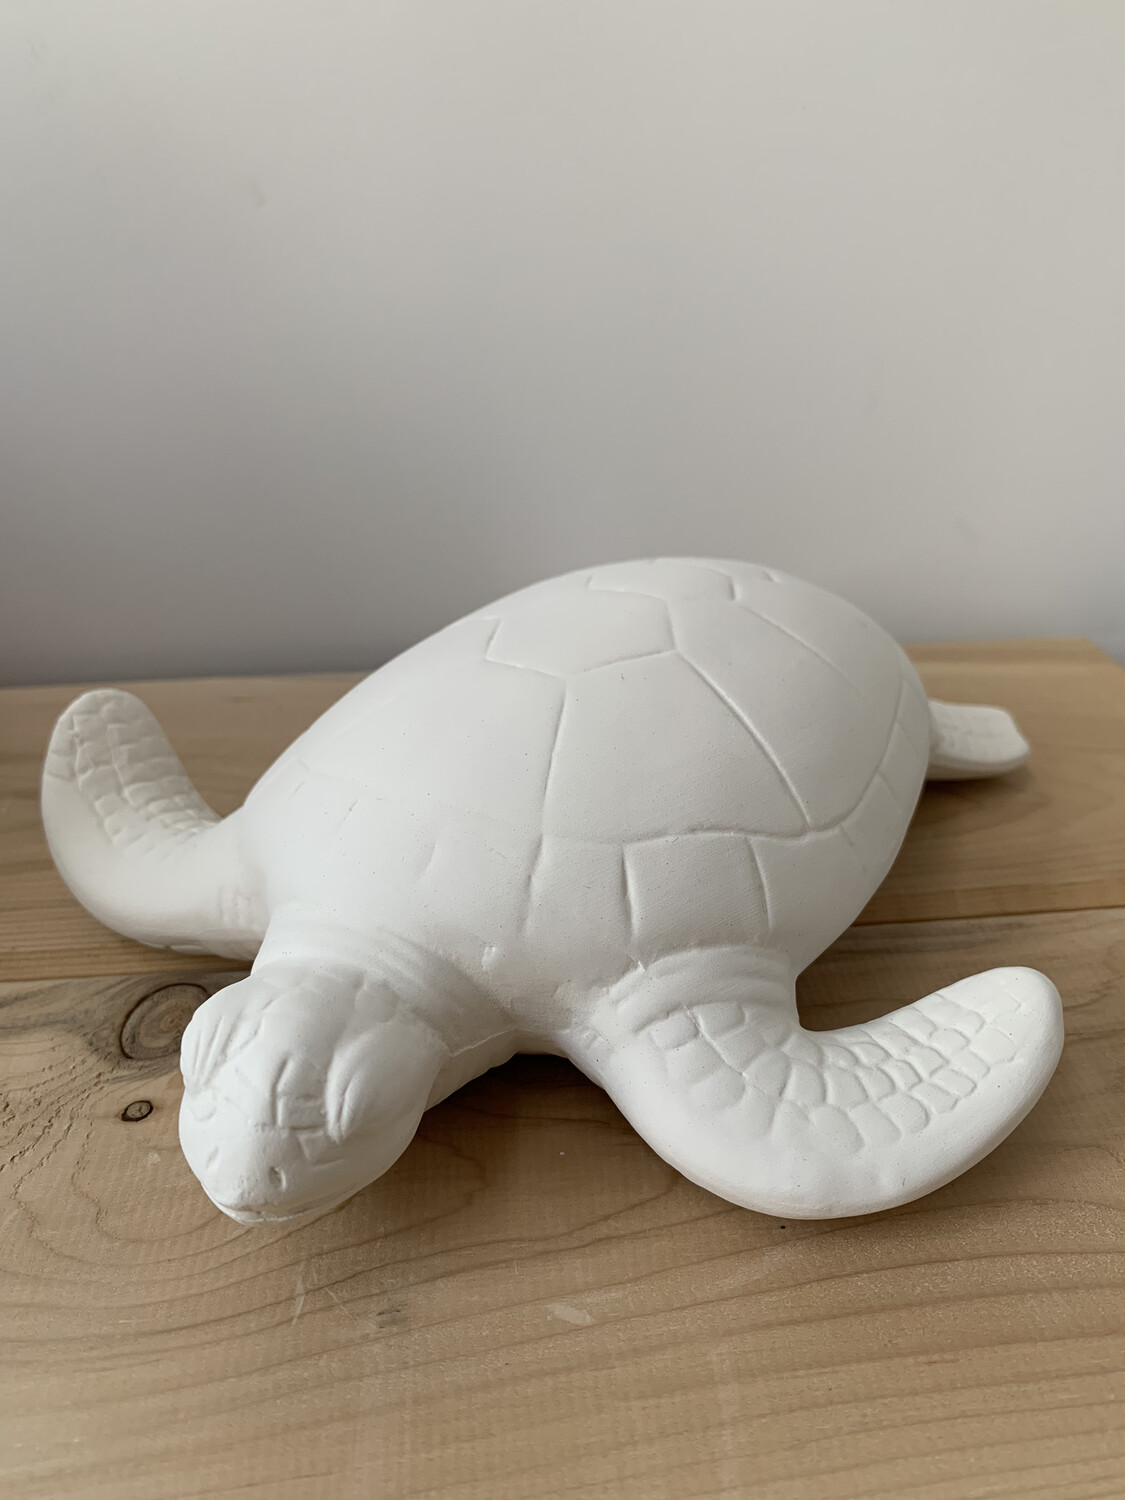 Paint Your Own Pottery - Ceramic  Sea Turtle Figurine Painting Kit